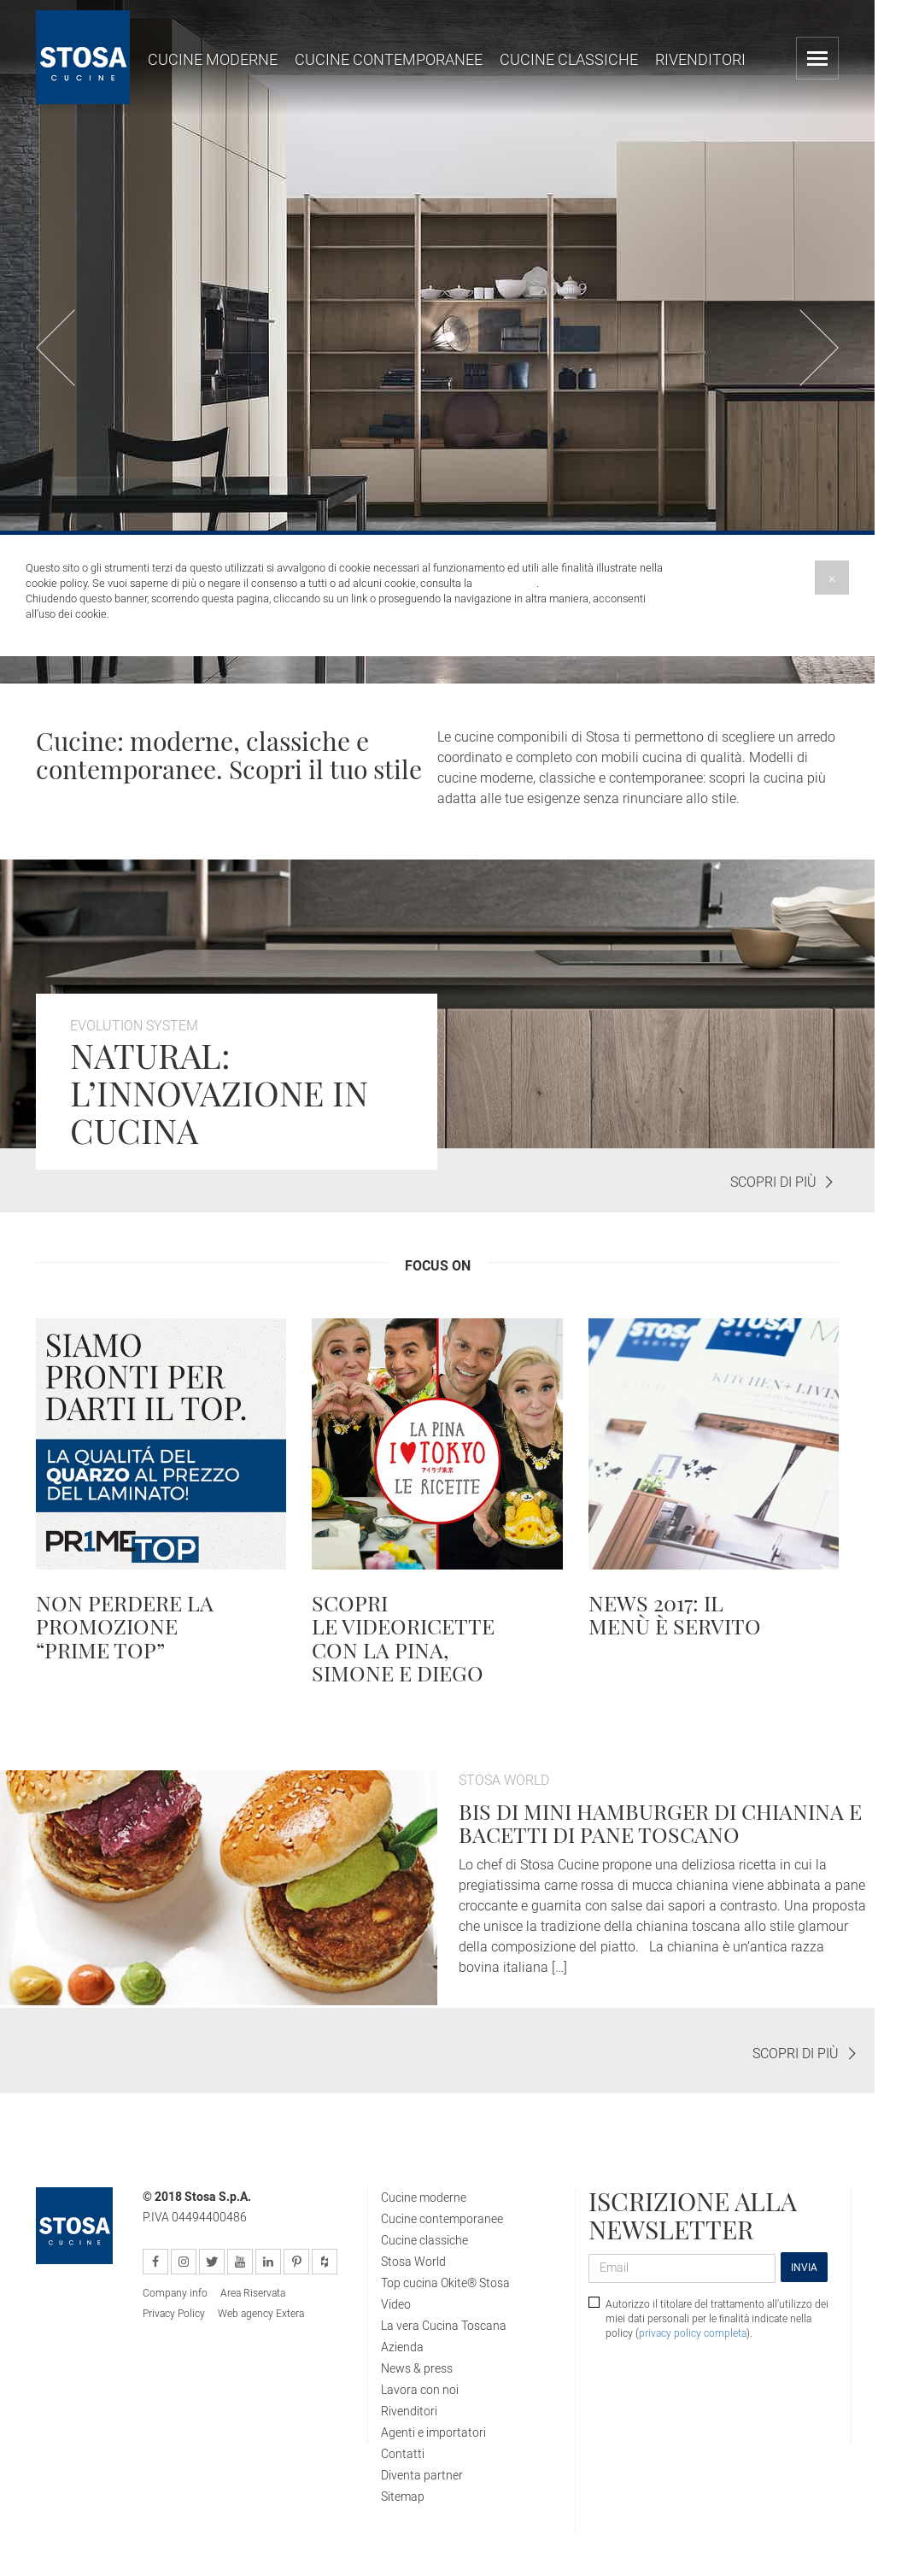 Stosa Cucine Competitors, Revenue and Employees - Owler Company Profile